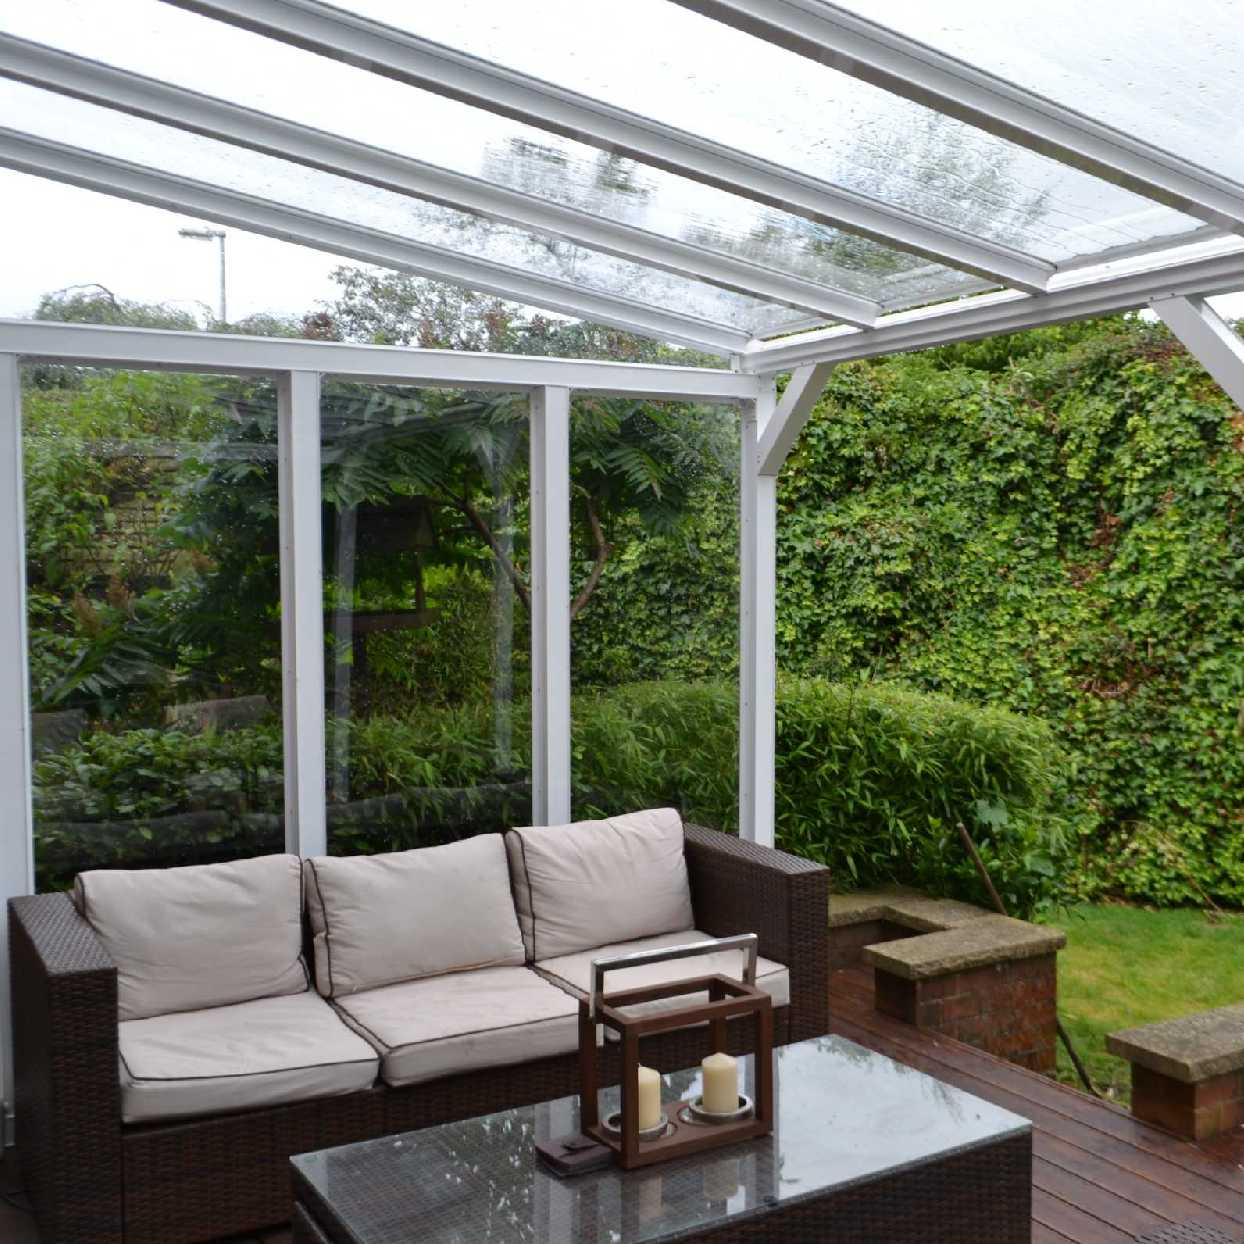 Omega Smart Lean-To Canopy with 6mm Glass Clear Plate Polycarbonate Glazing - 9.1m (W) x 2.5m (P), (5) Supporting Posts